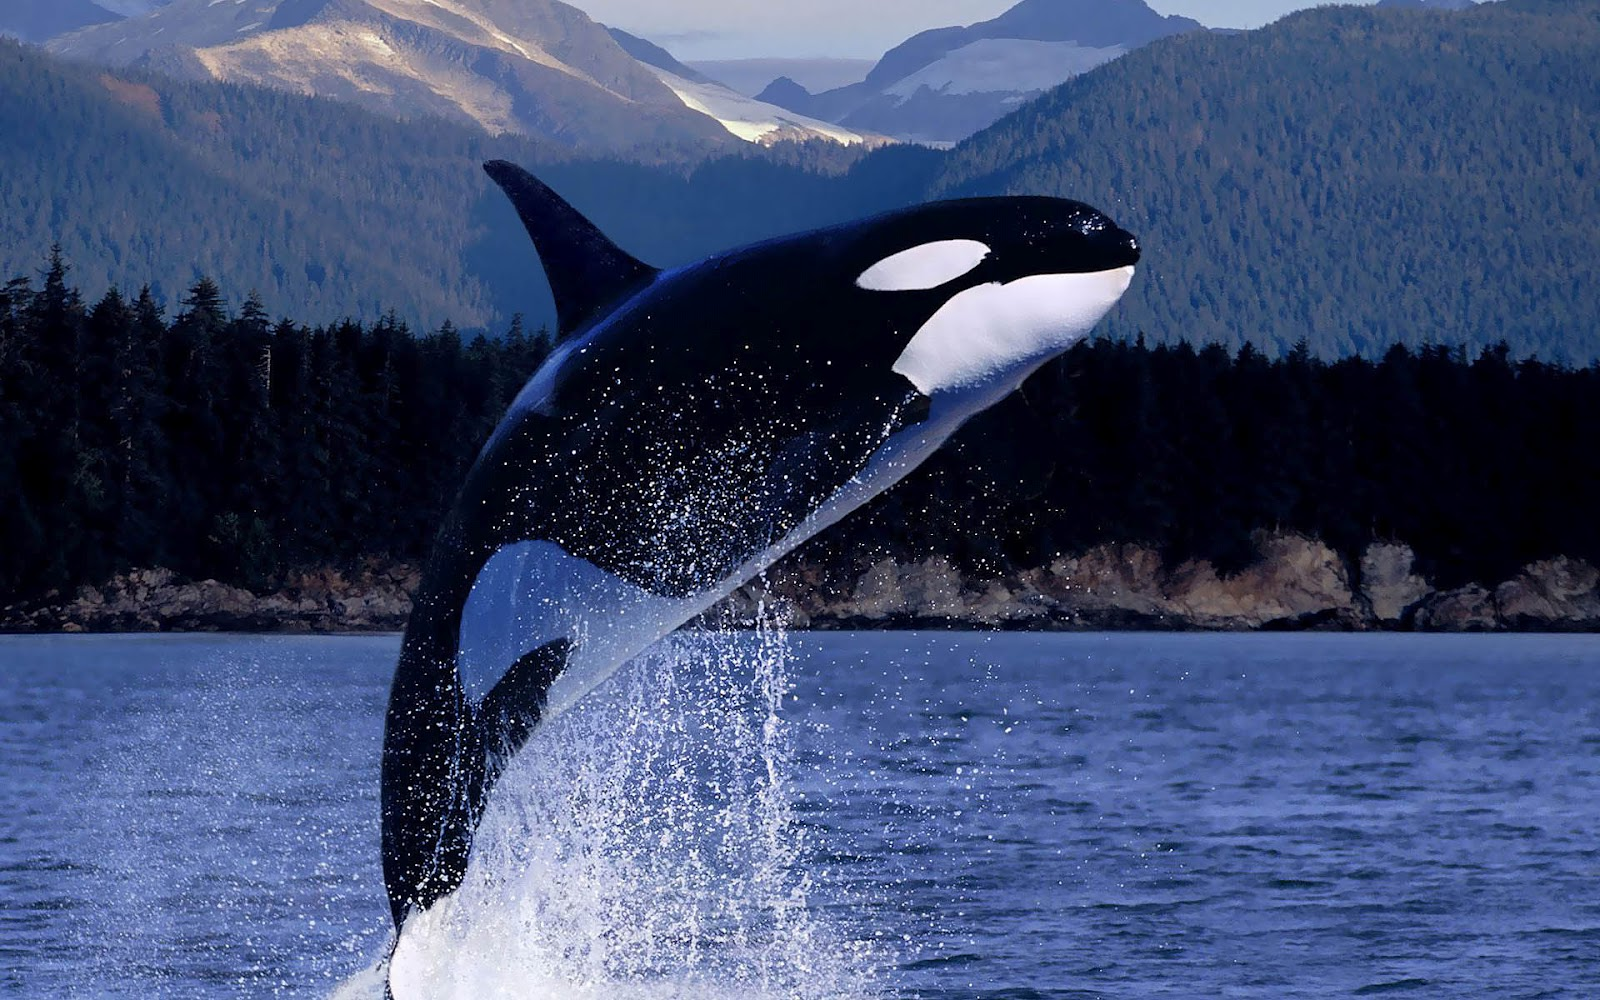 Free Animated Frog Wallpaper Orca Killer Whale Jumping Out Of The Water